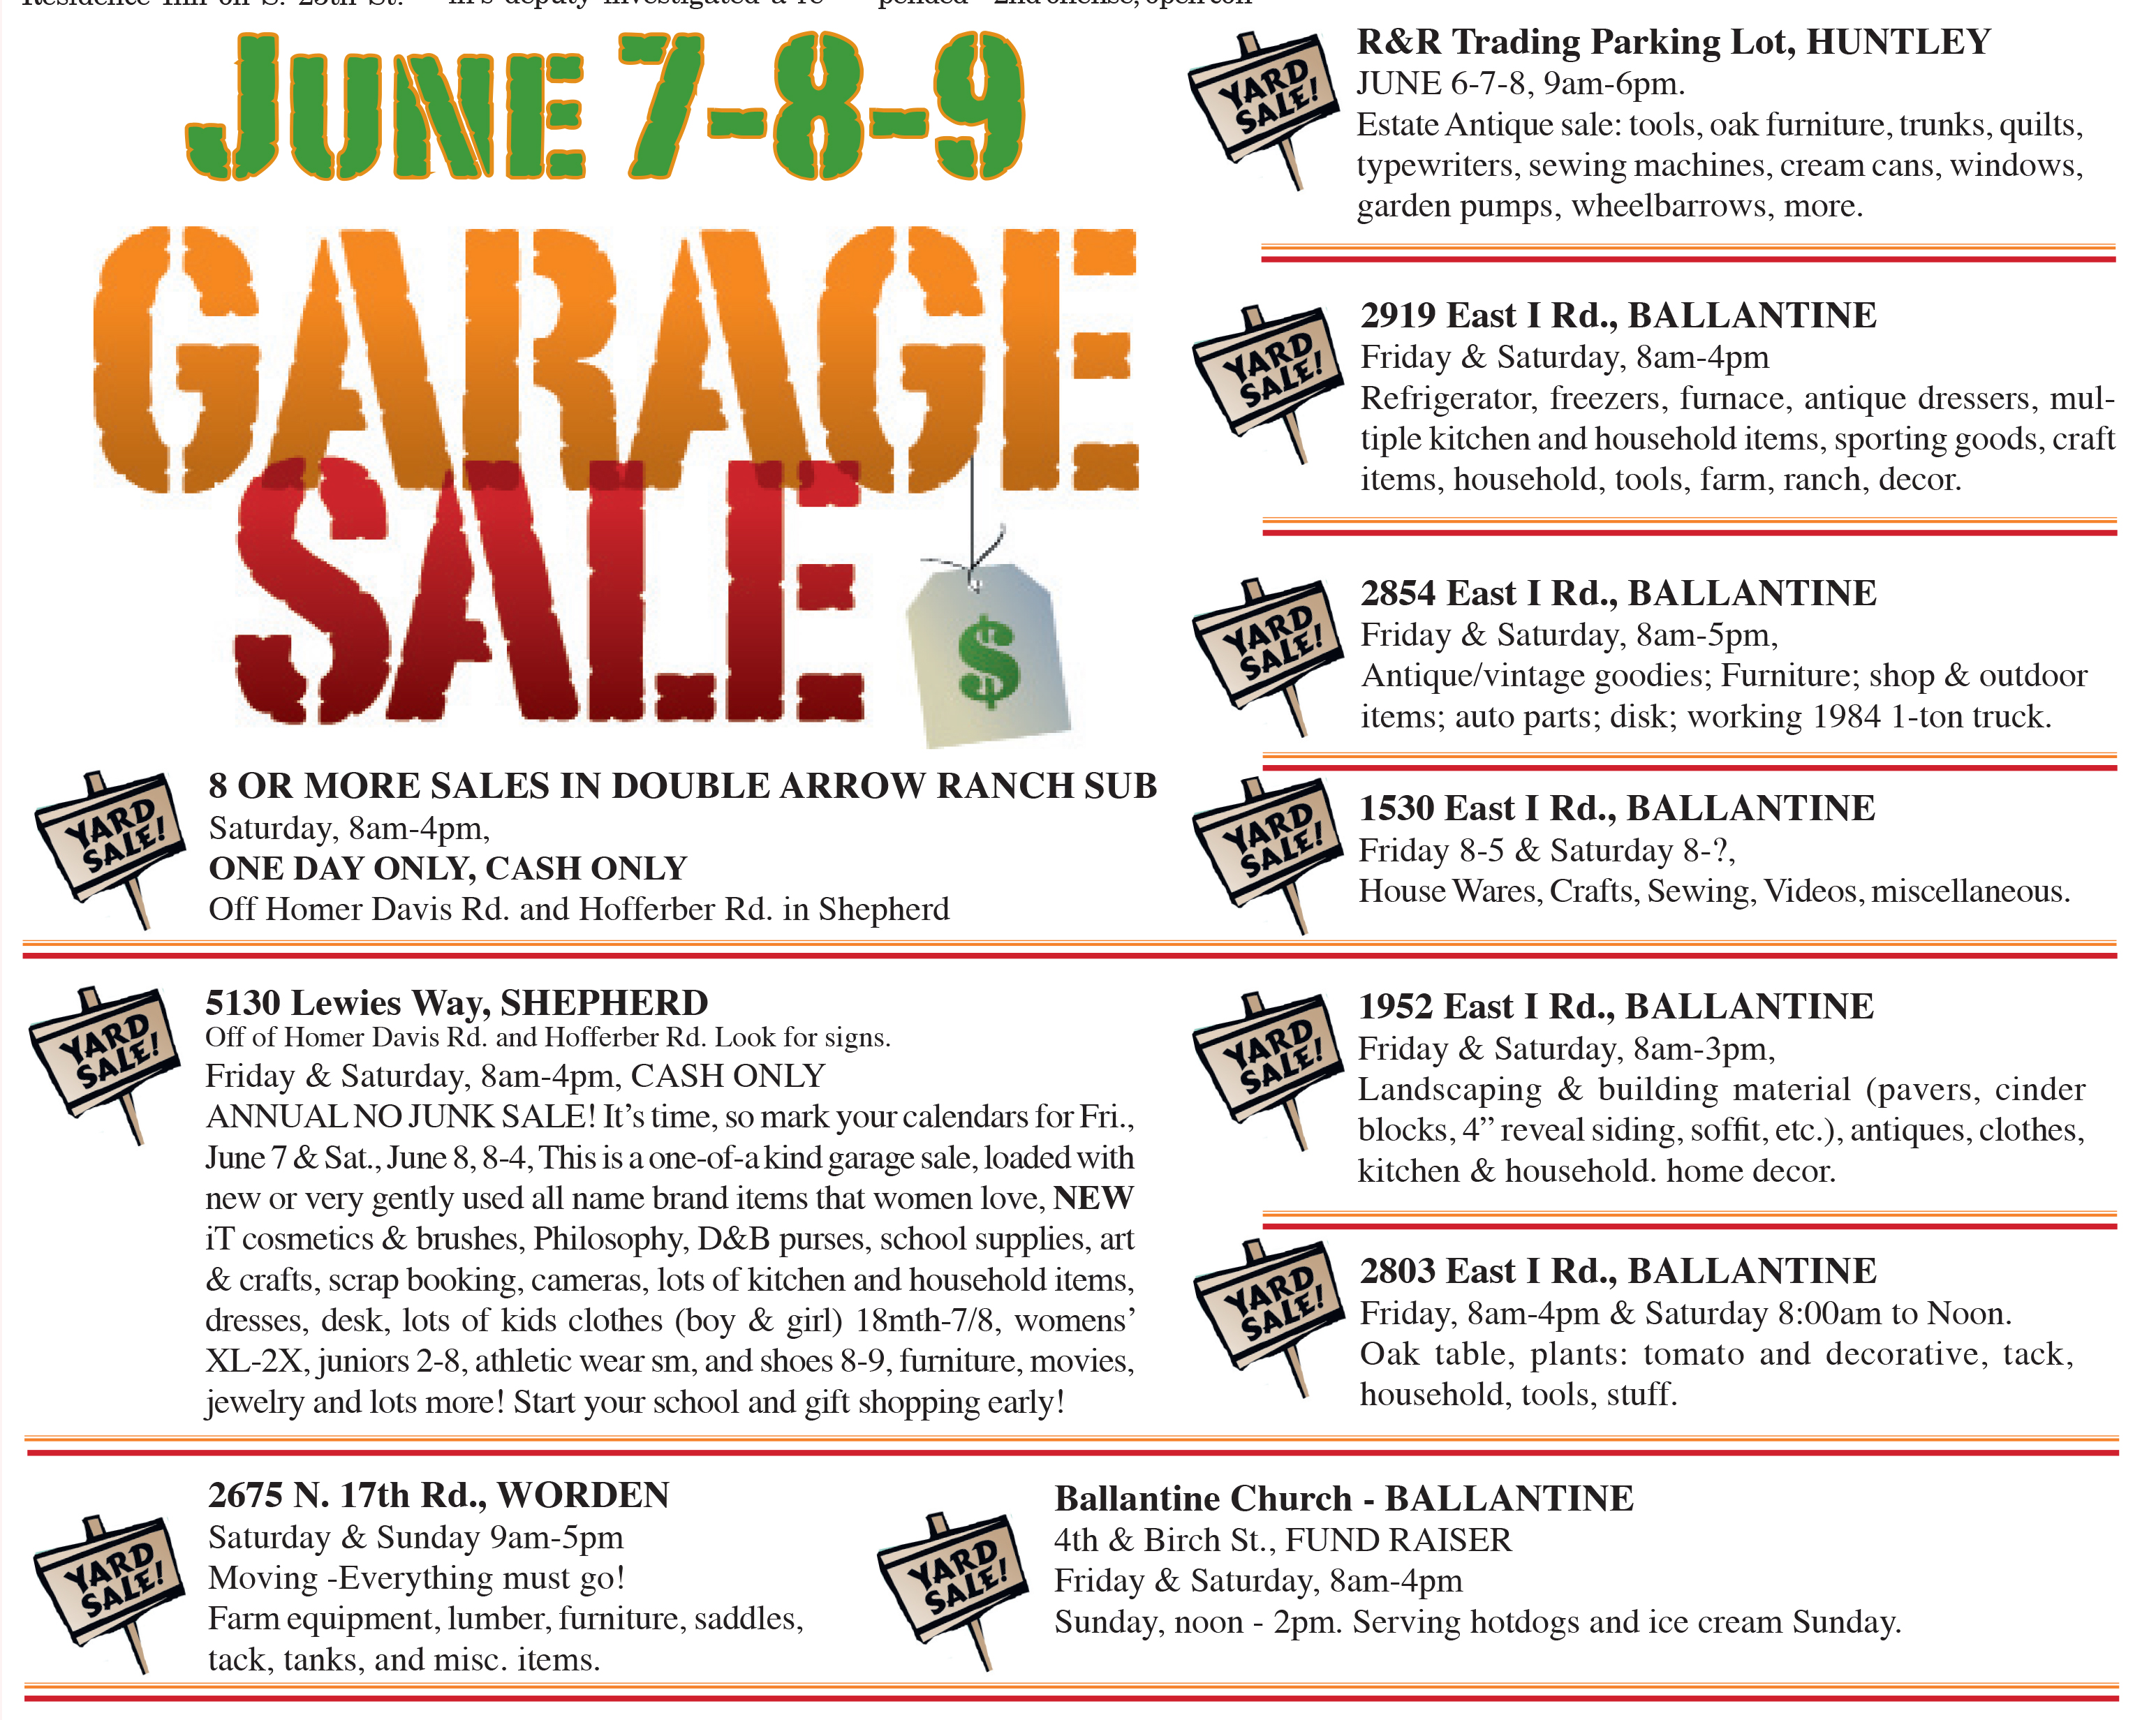 Garage Sales for this weekend – Huntley Project- Online